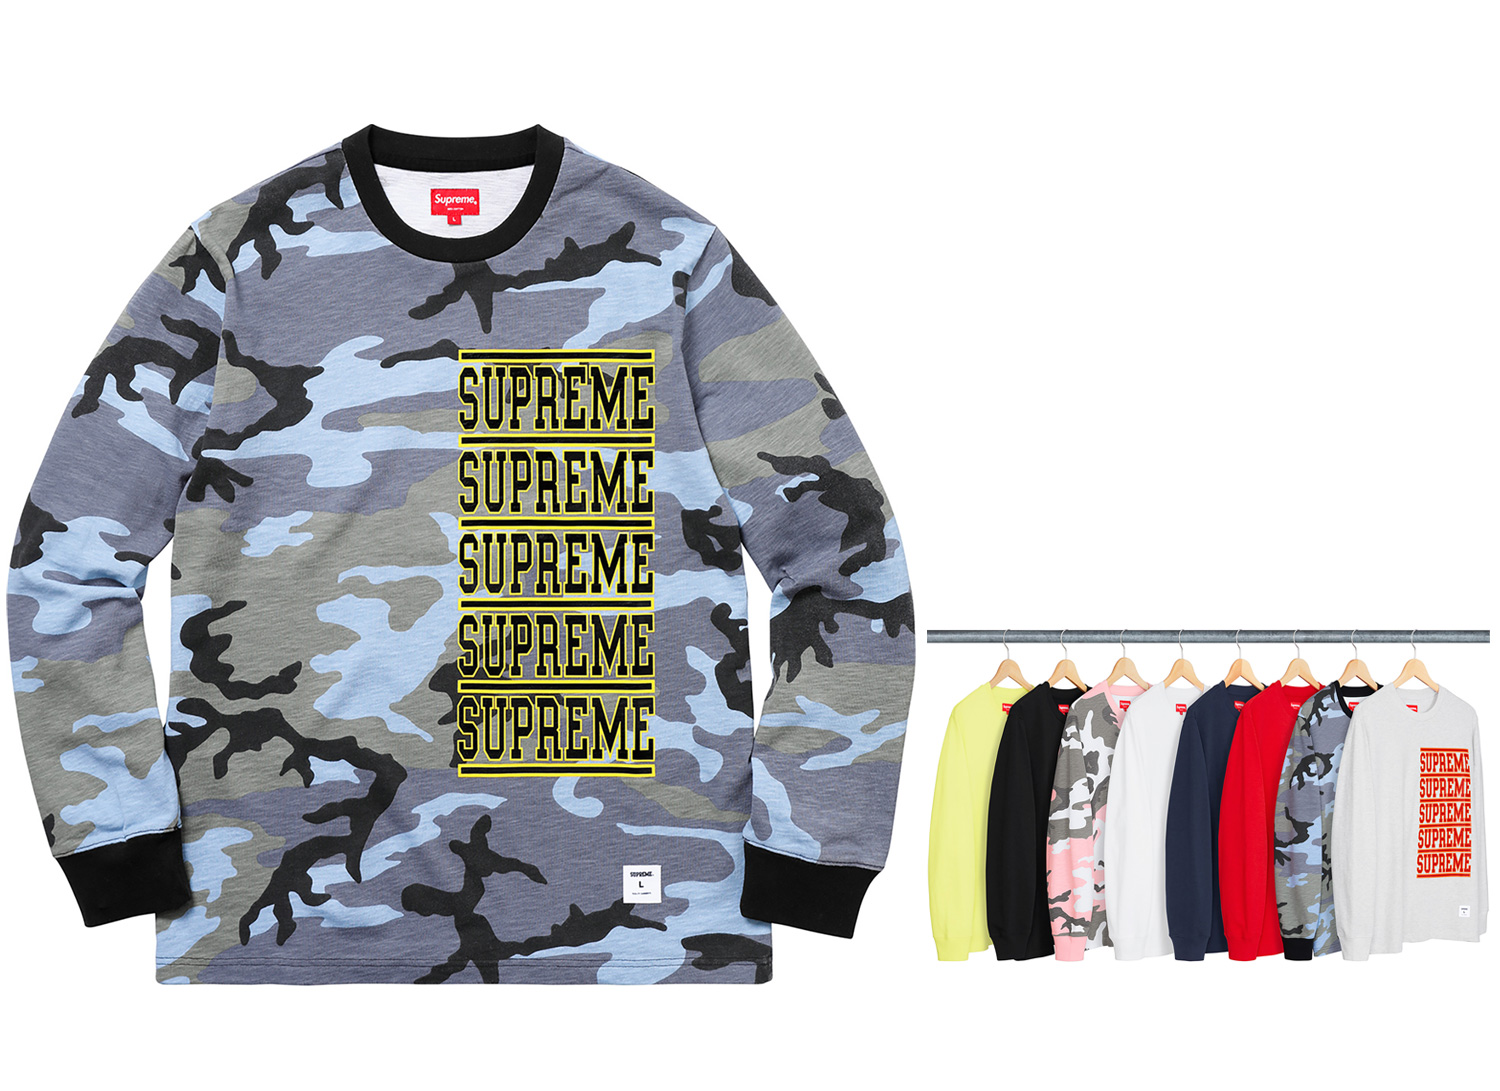 Stacked L/S Top